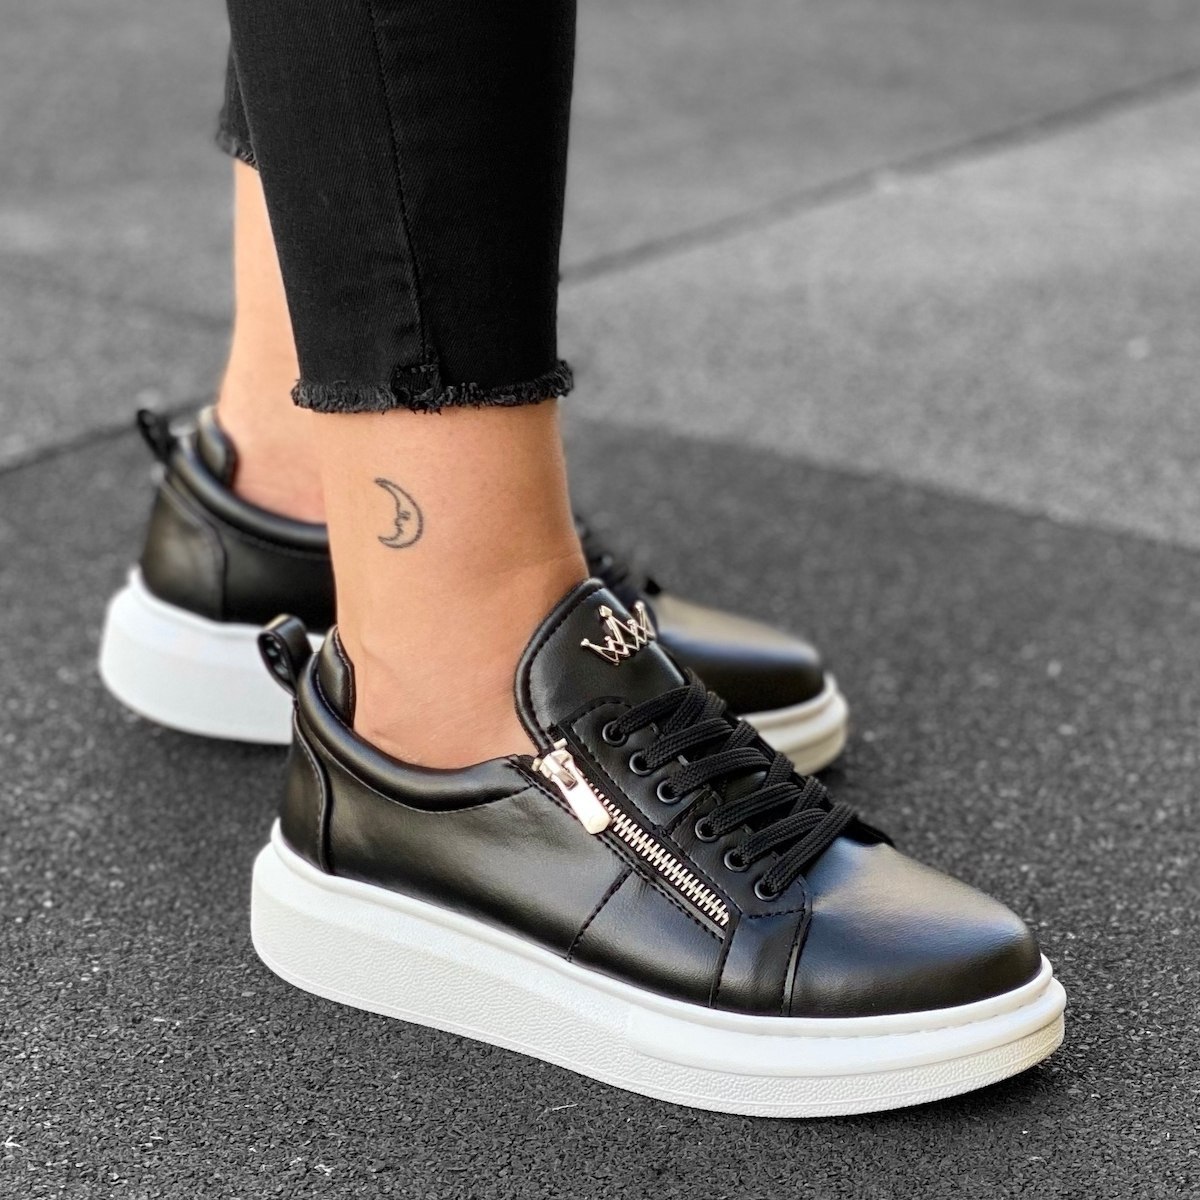 Woman's Hype Sole Zipped Style Sneakers in Black-White